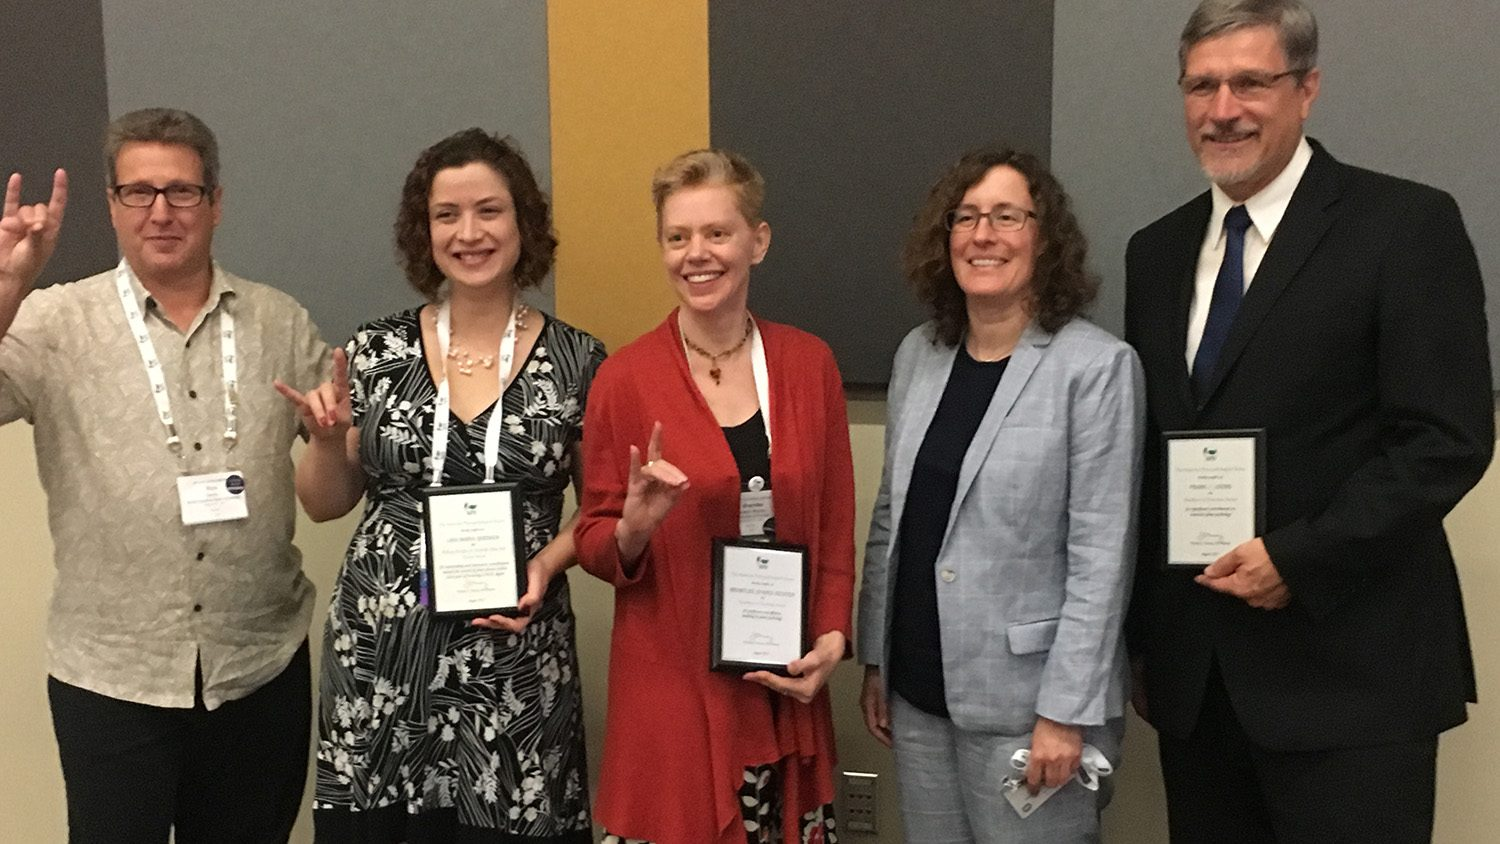 Photograph of the APS award winners and department head.